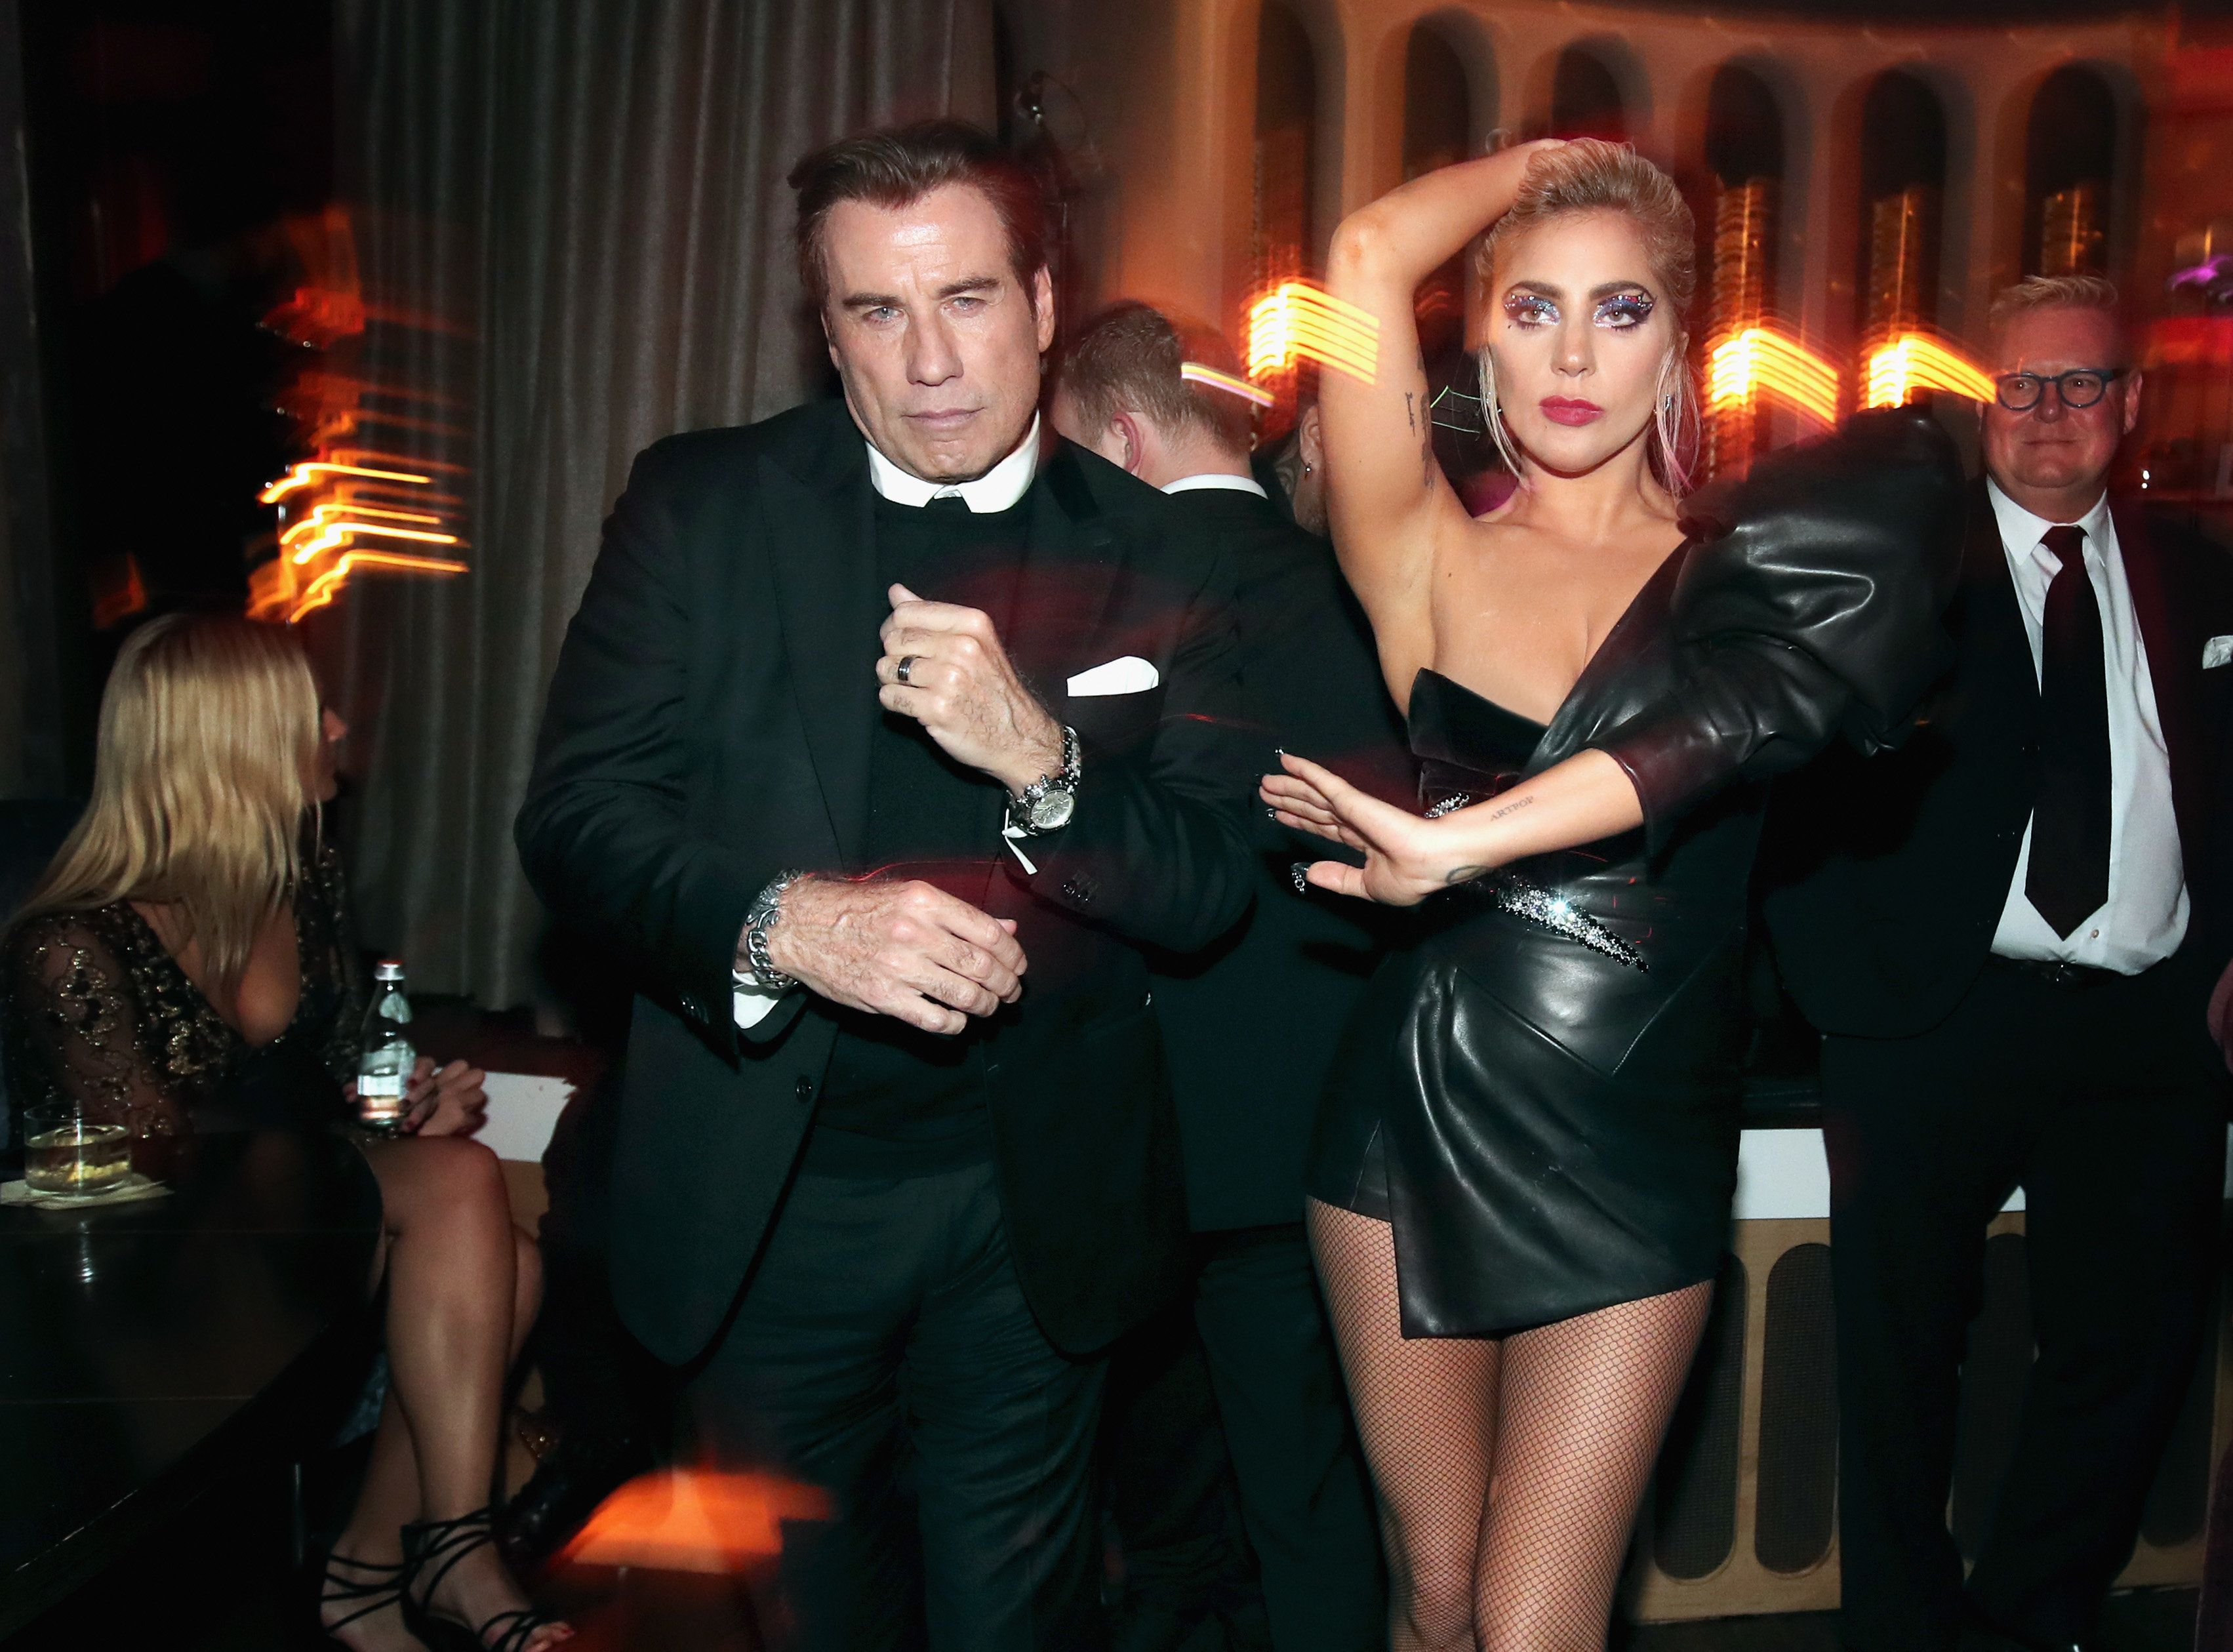 These Post-Grammys Pics Have Made Us Desperately Want To Party With John Travolta And Lady